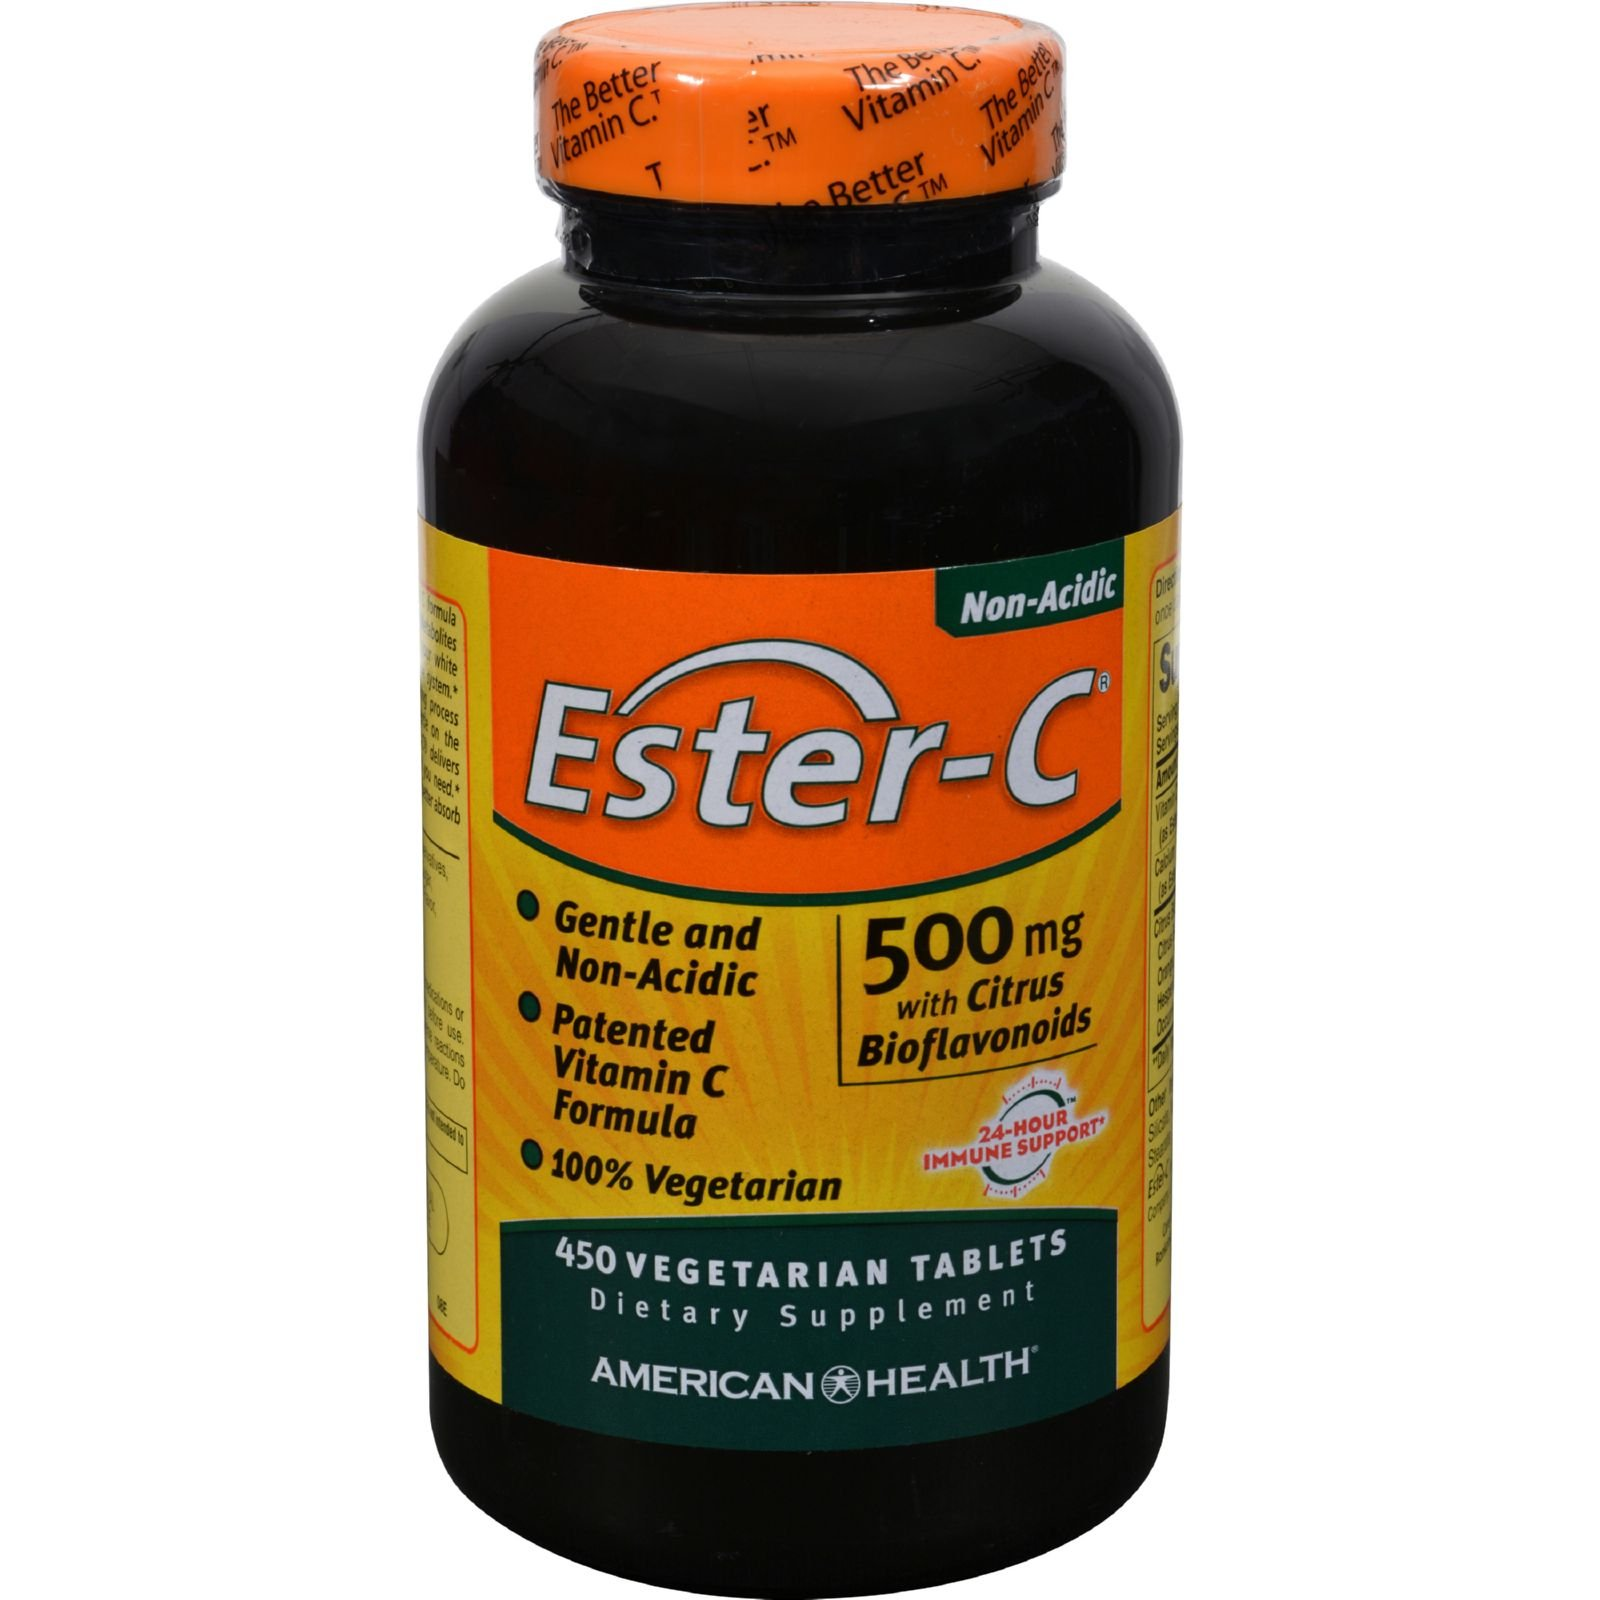 4 Pack of American Health Ester-C with Citrus Bioflavonoids - 500 mg - 450 Vegetarian Tablets - - -